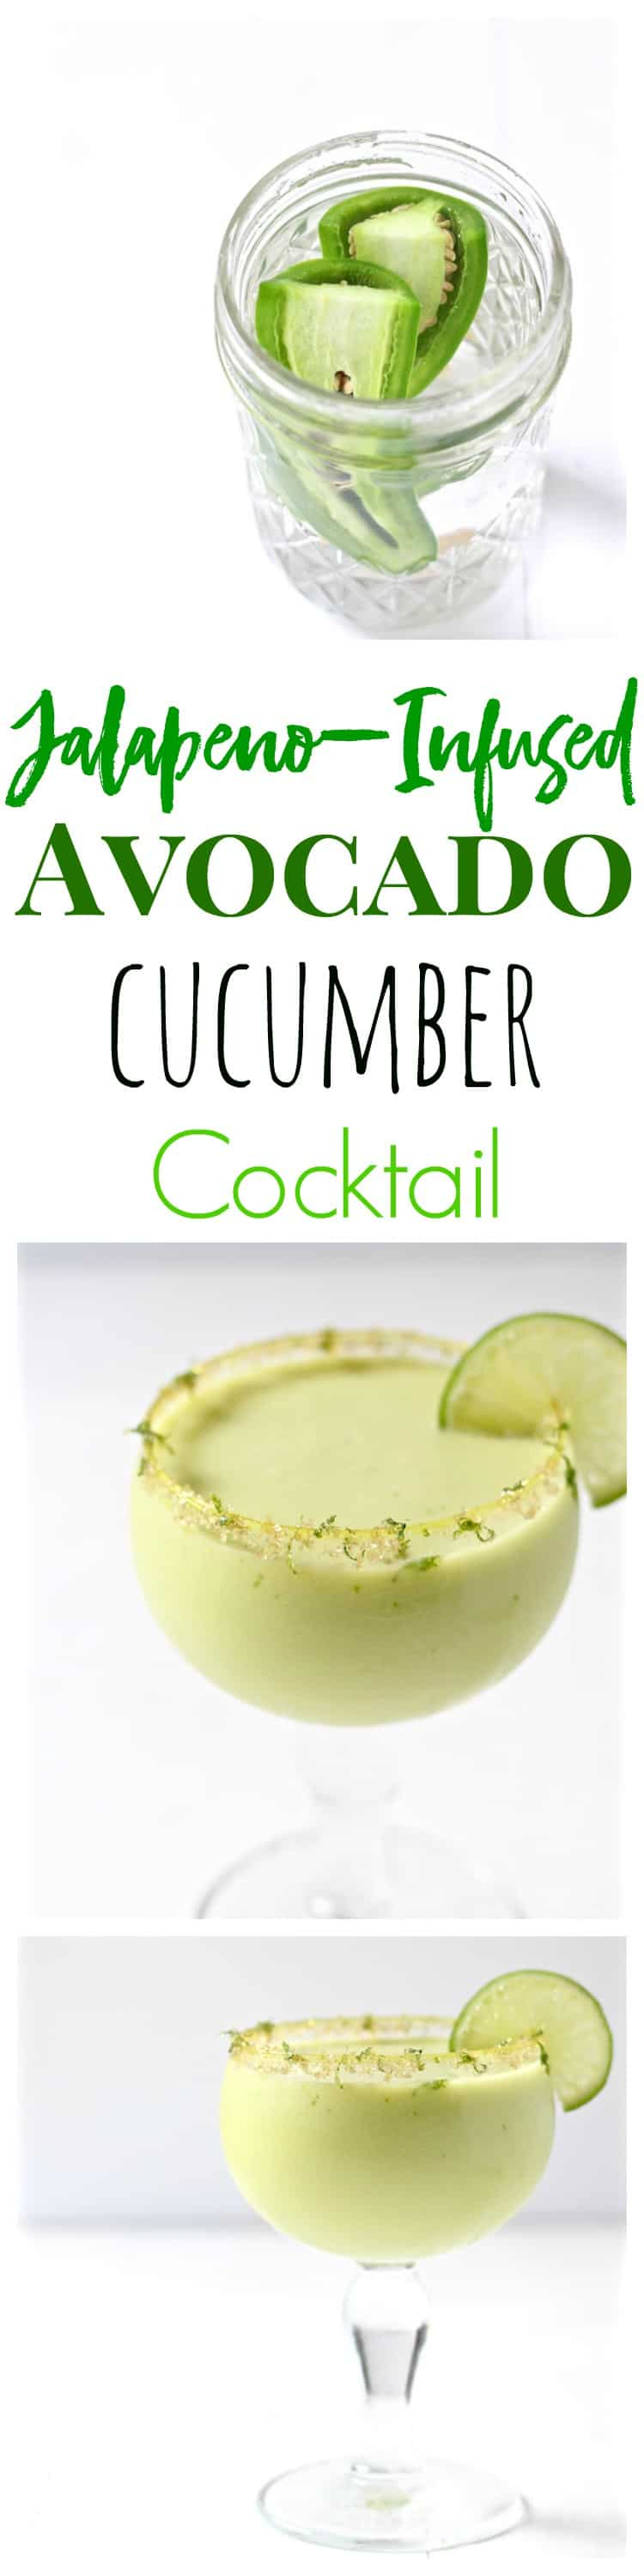 jalapeno infused avocado cucumber cocktail pinterest